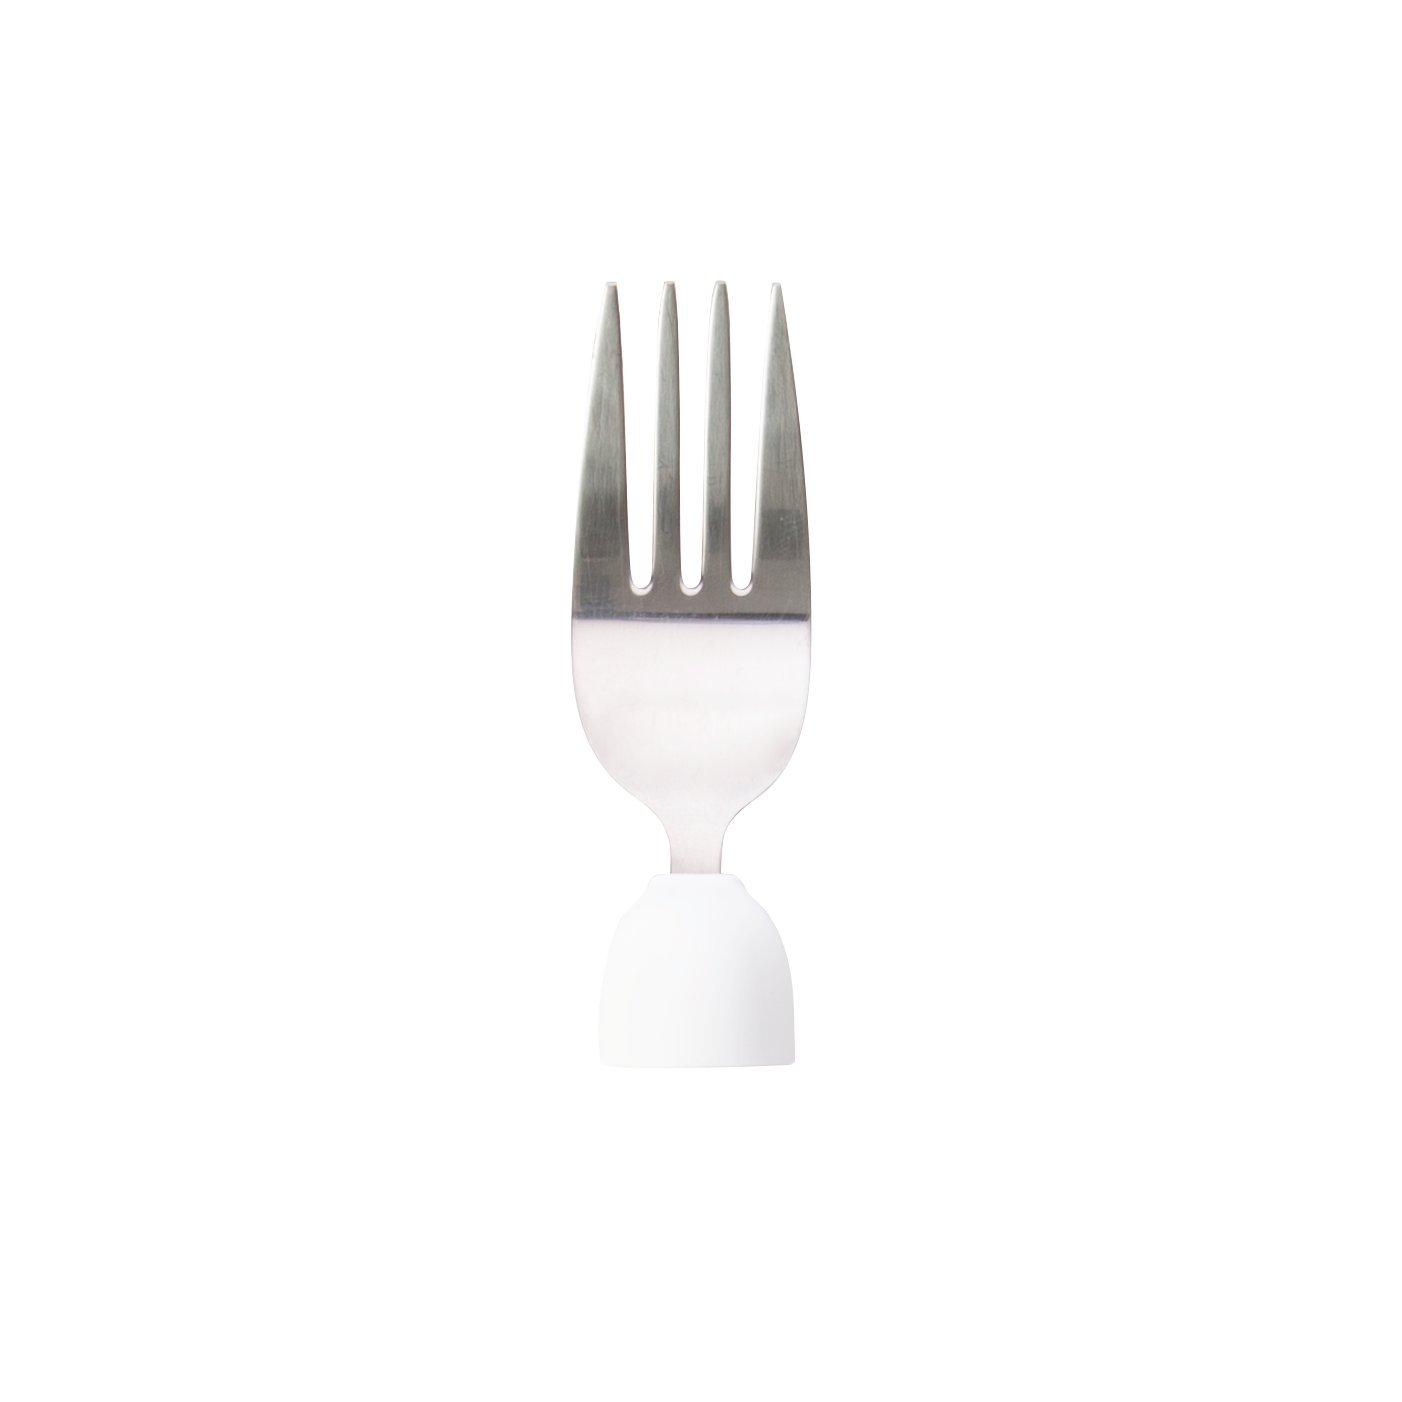 Liftware Level Fork Attachment by Liftware